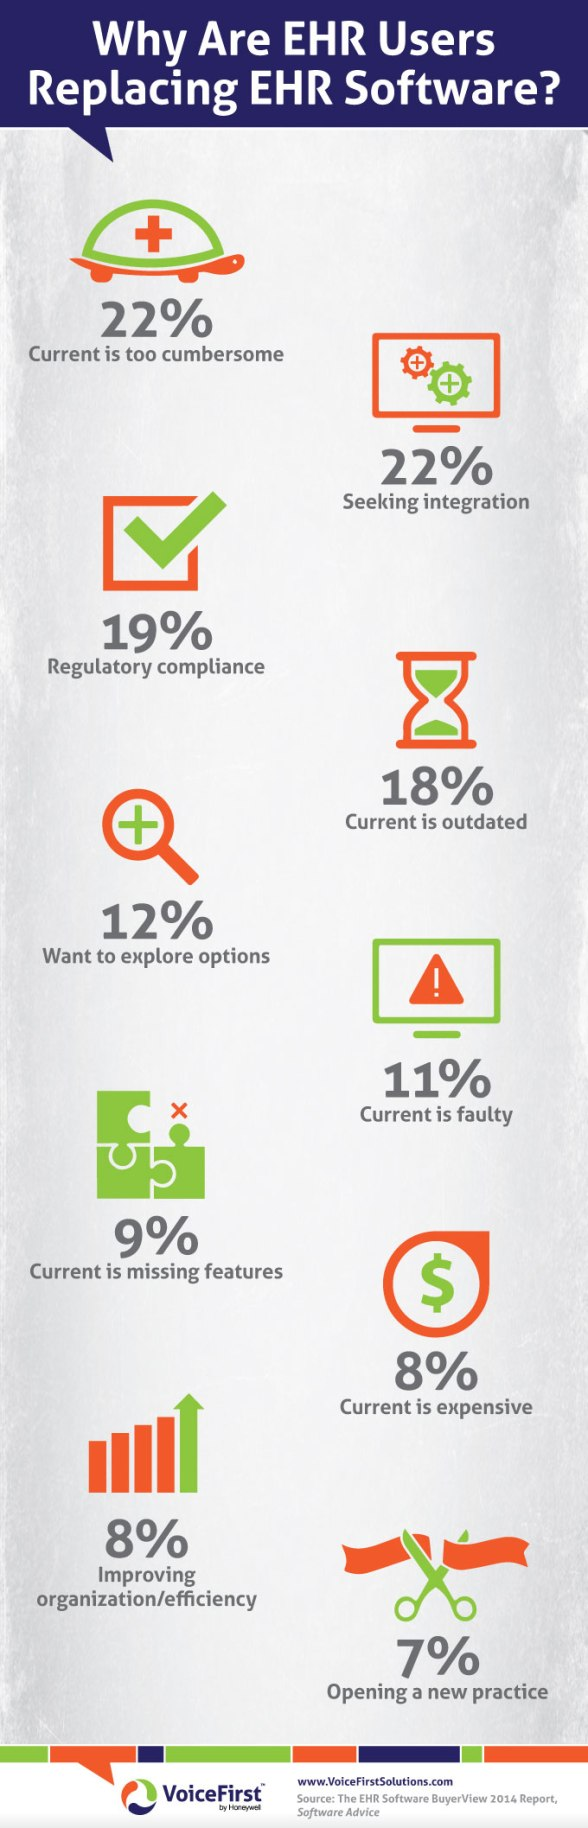 infographic-ehr-users-replacing-software